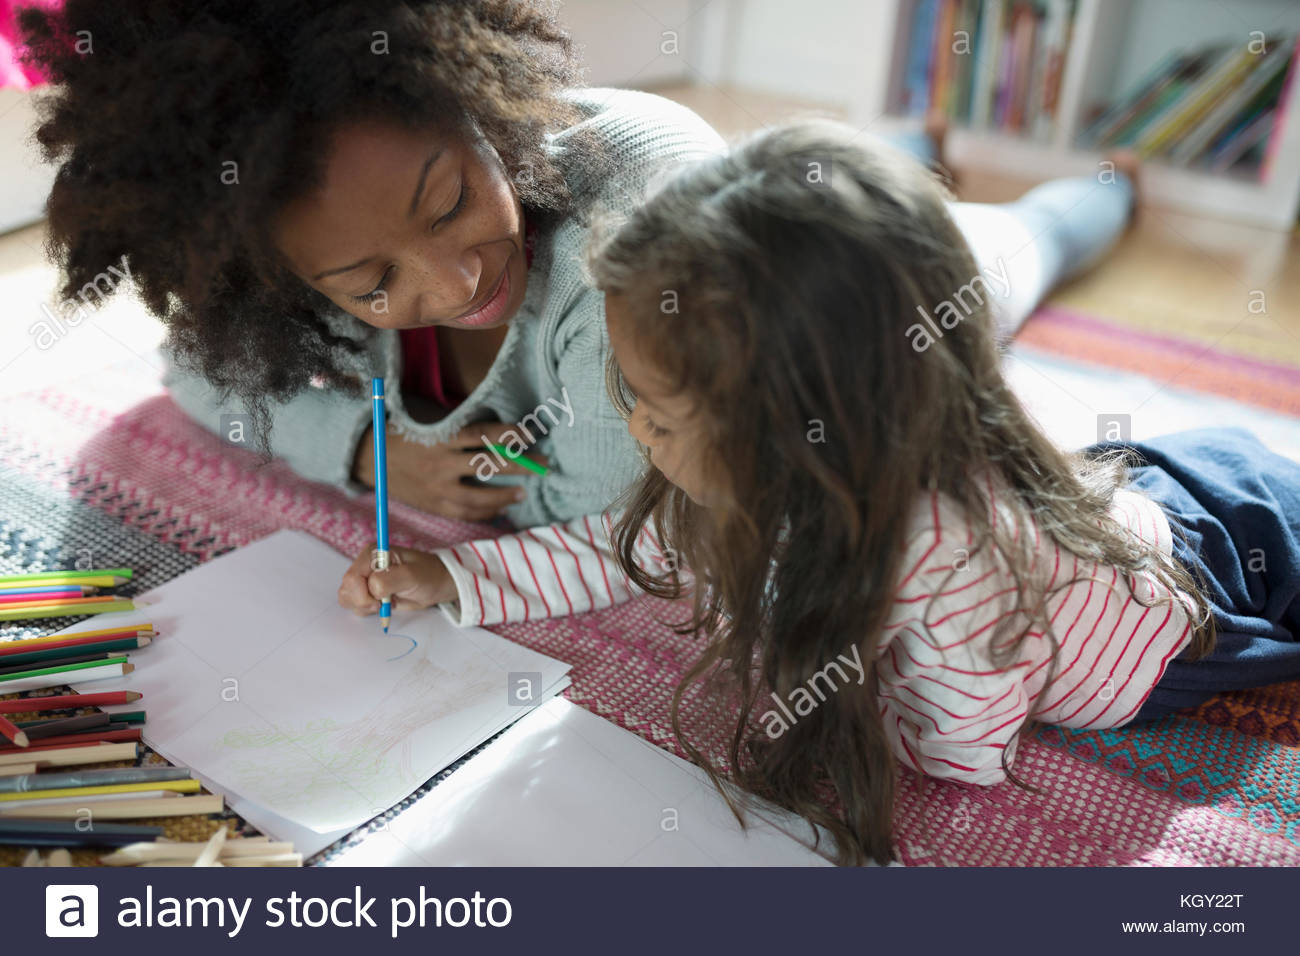 Mother and daughter drawing with colored pencils on rug - Stock Image